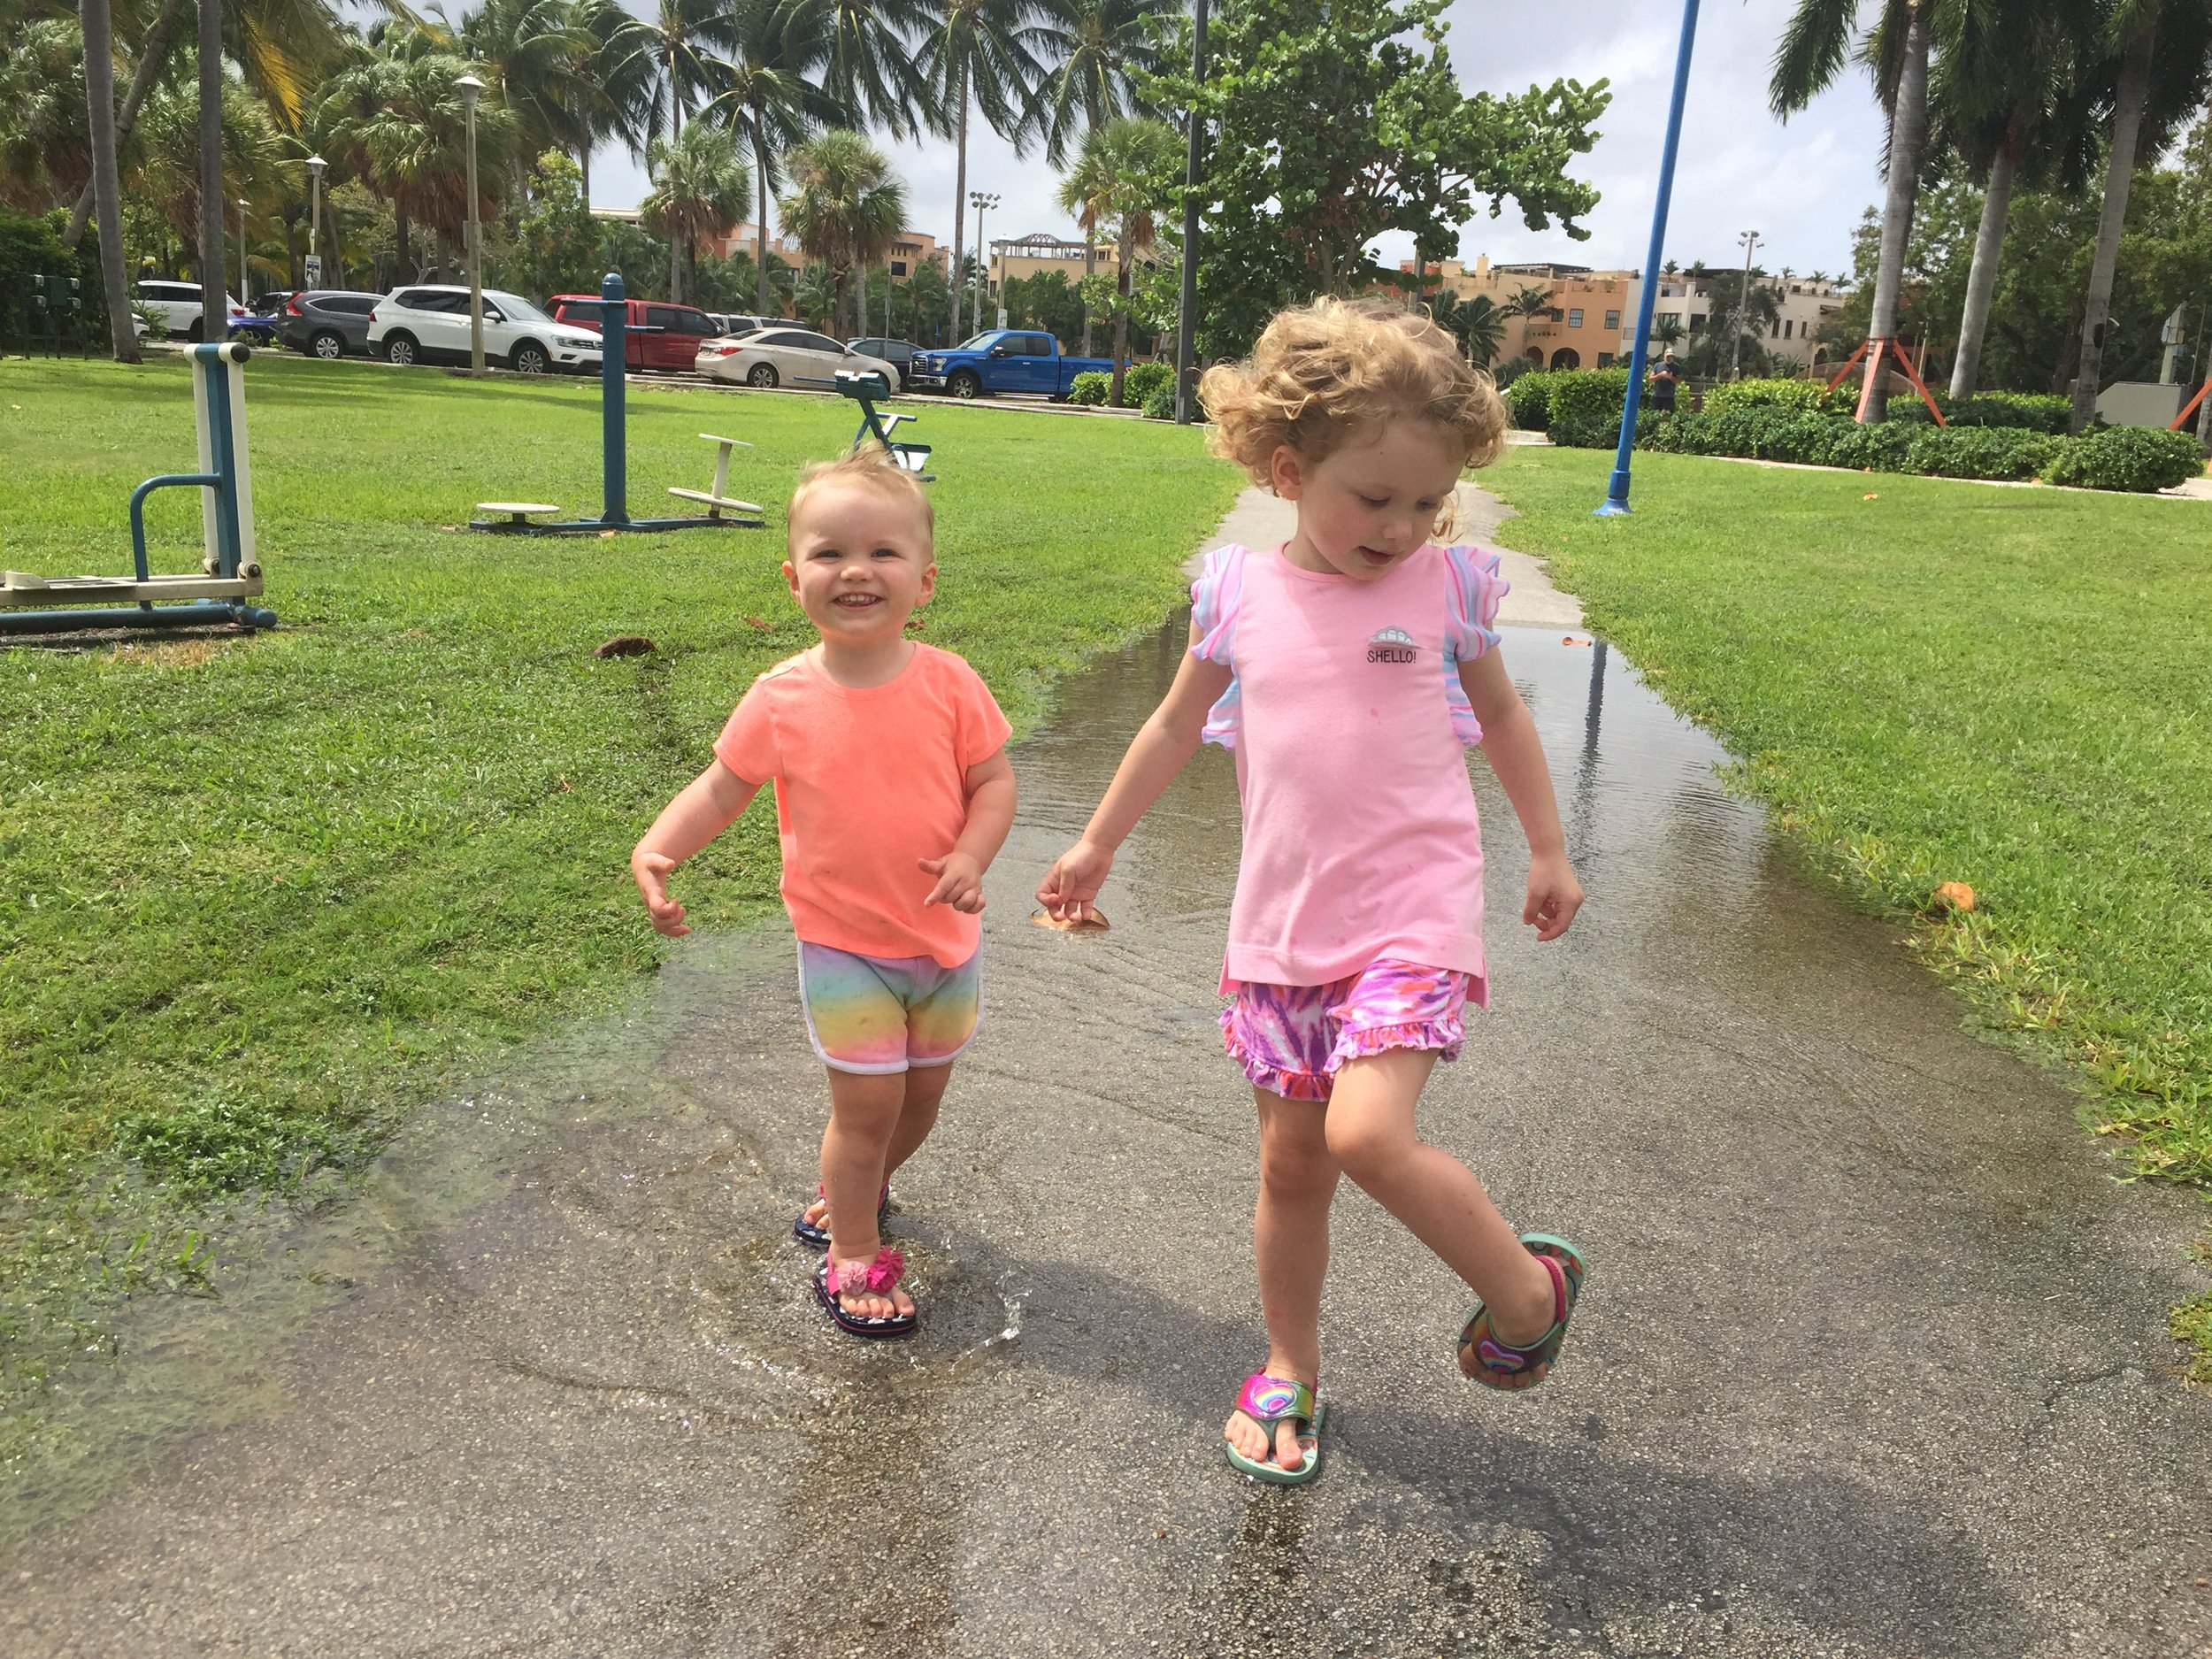 Making the most out of the rainy days; Abby teaching Hadley one of her favorite pastimes, puddle jumping, in Coconut Grove, FL.